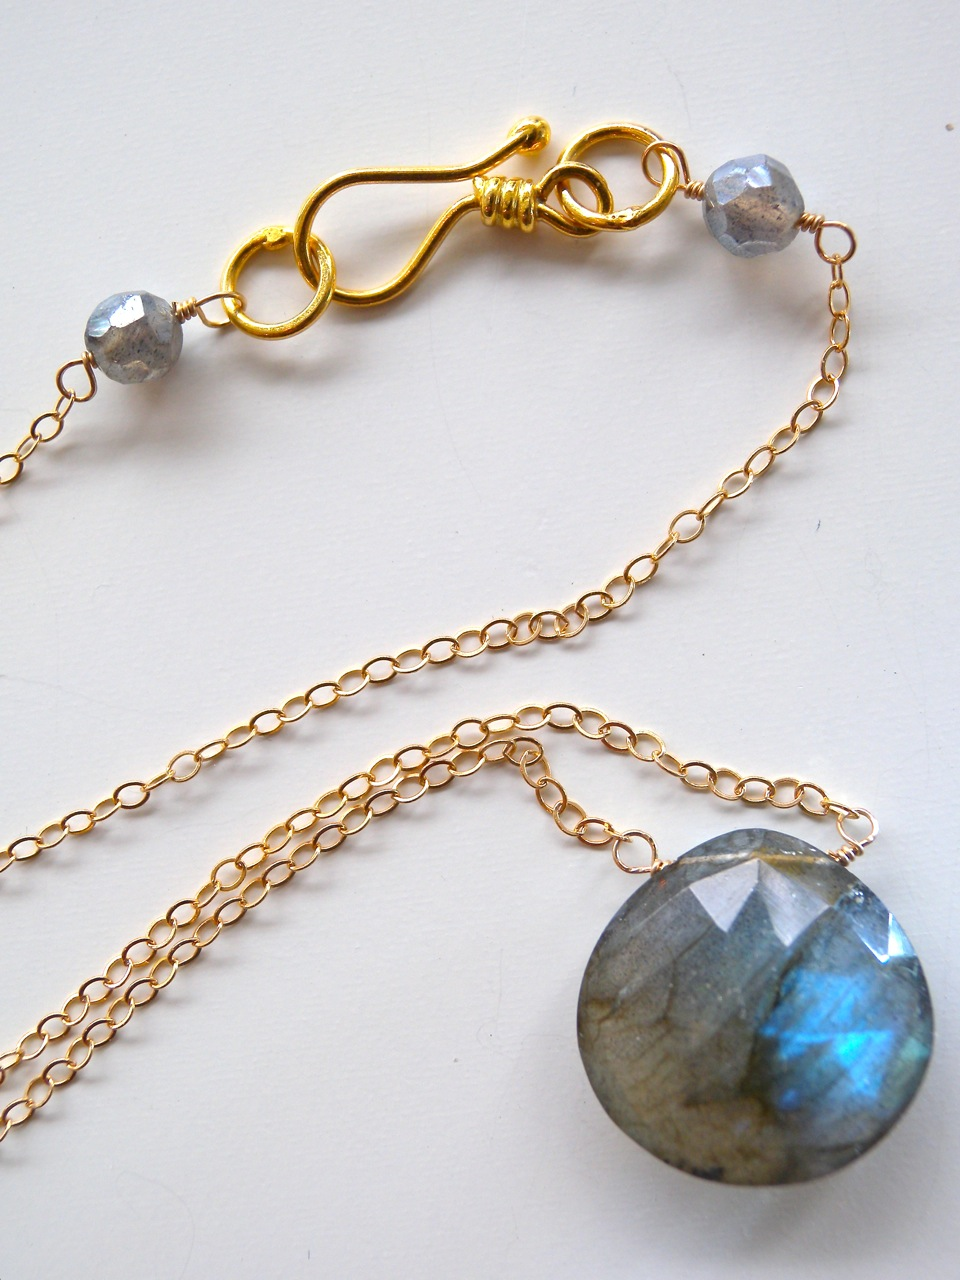 Rose cut labradorite briolette necklace. Image credit: Tartooful